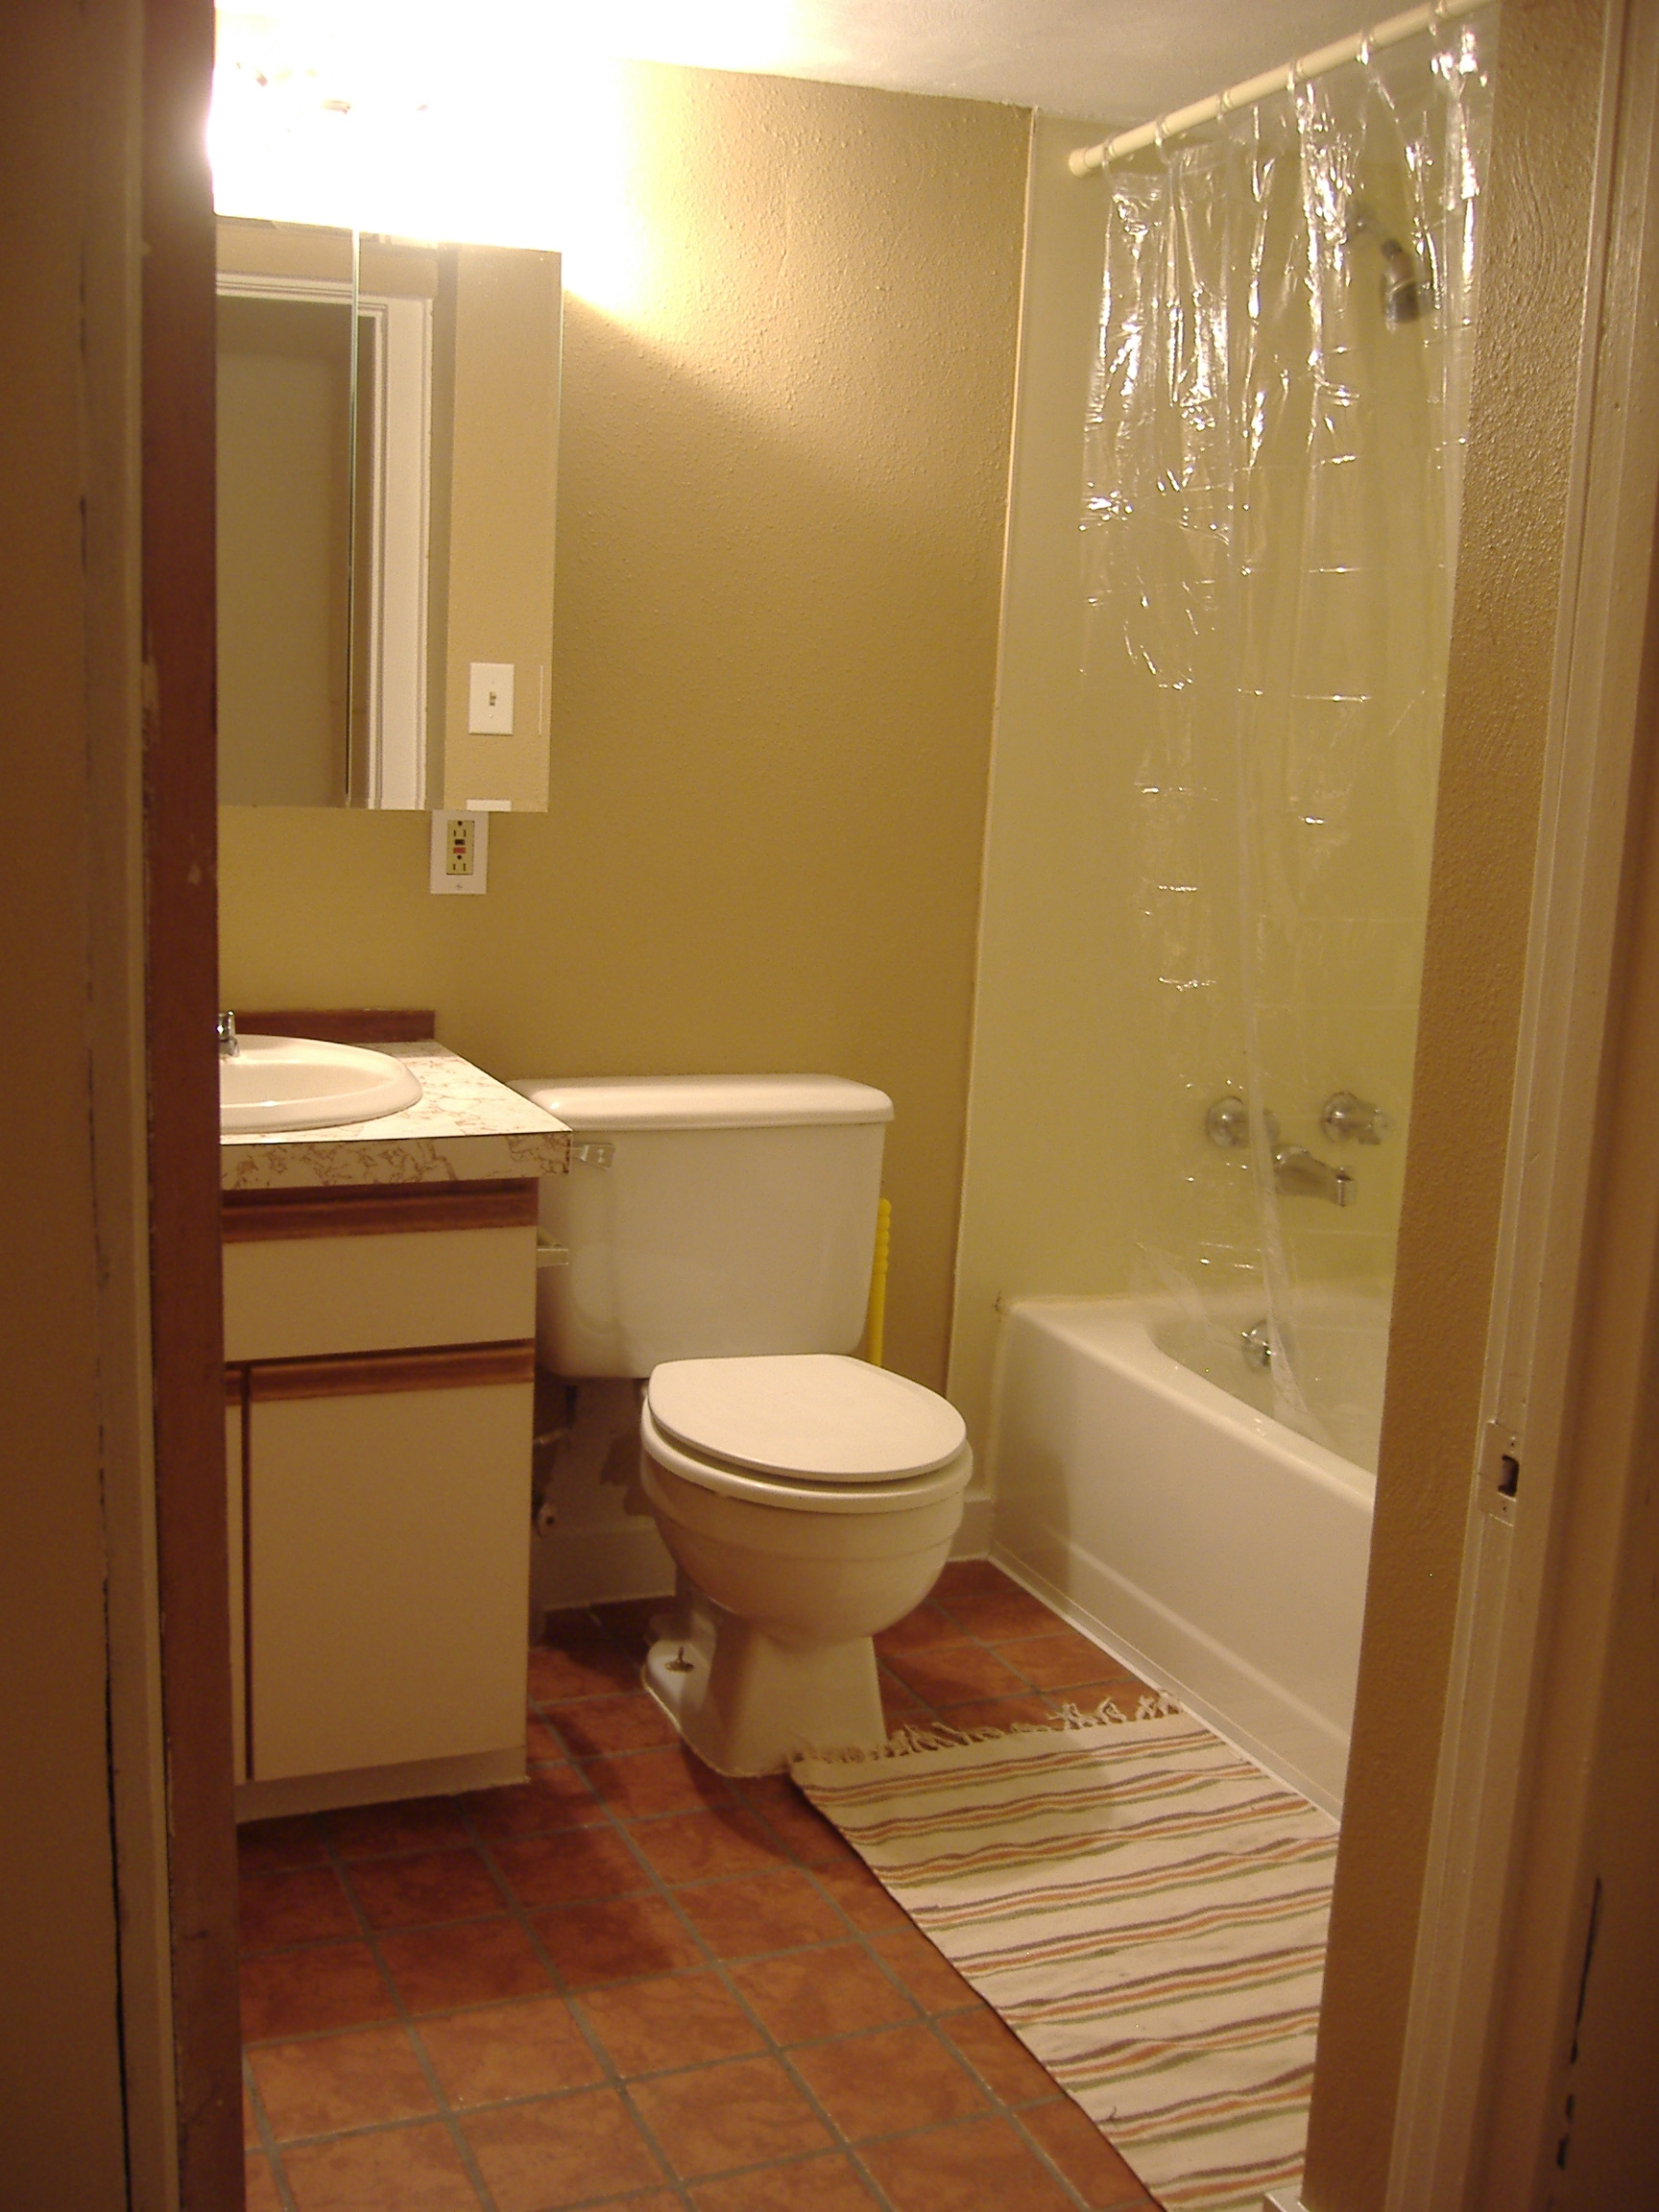 The Basement Apartment Bathroom Remodel Take 2 Tiffany Marie